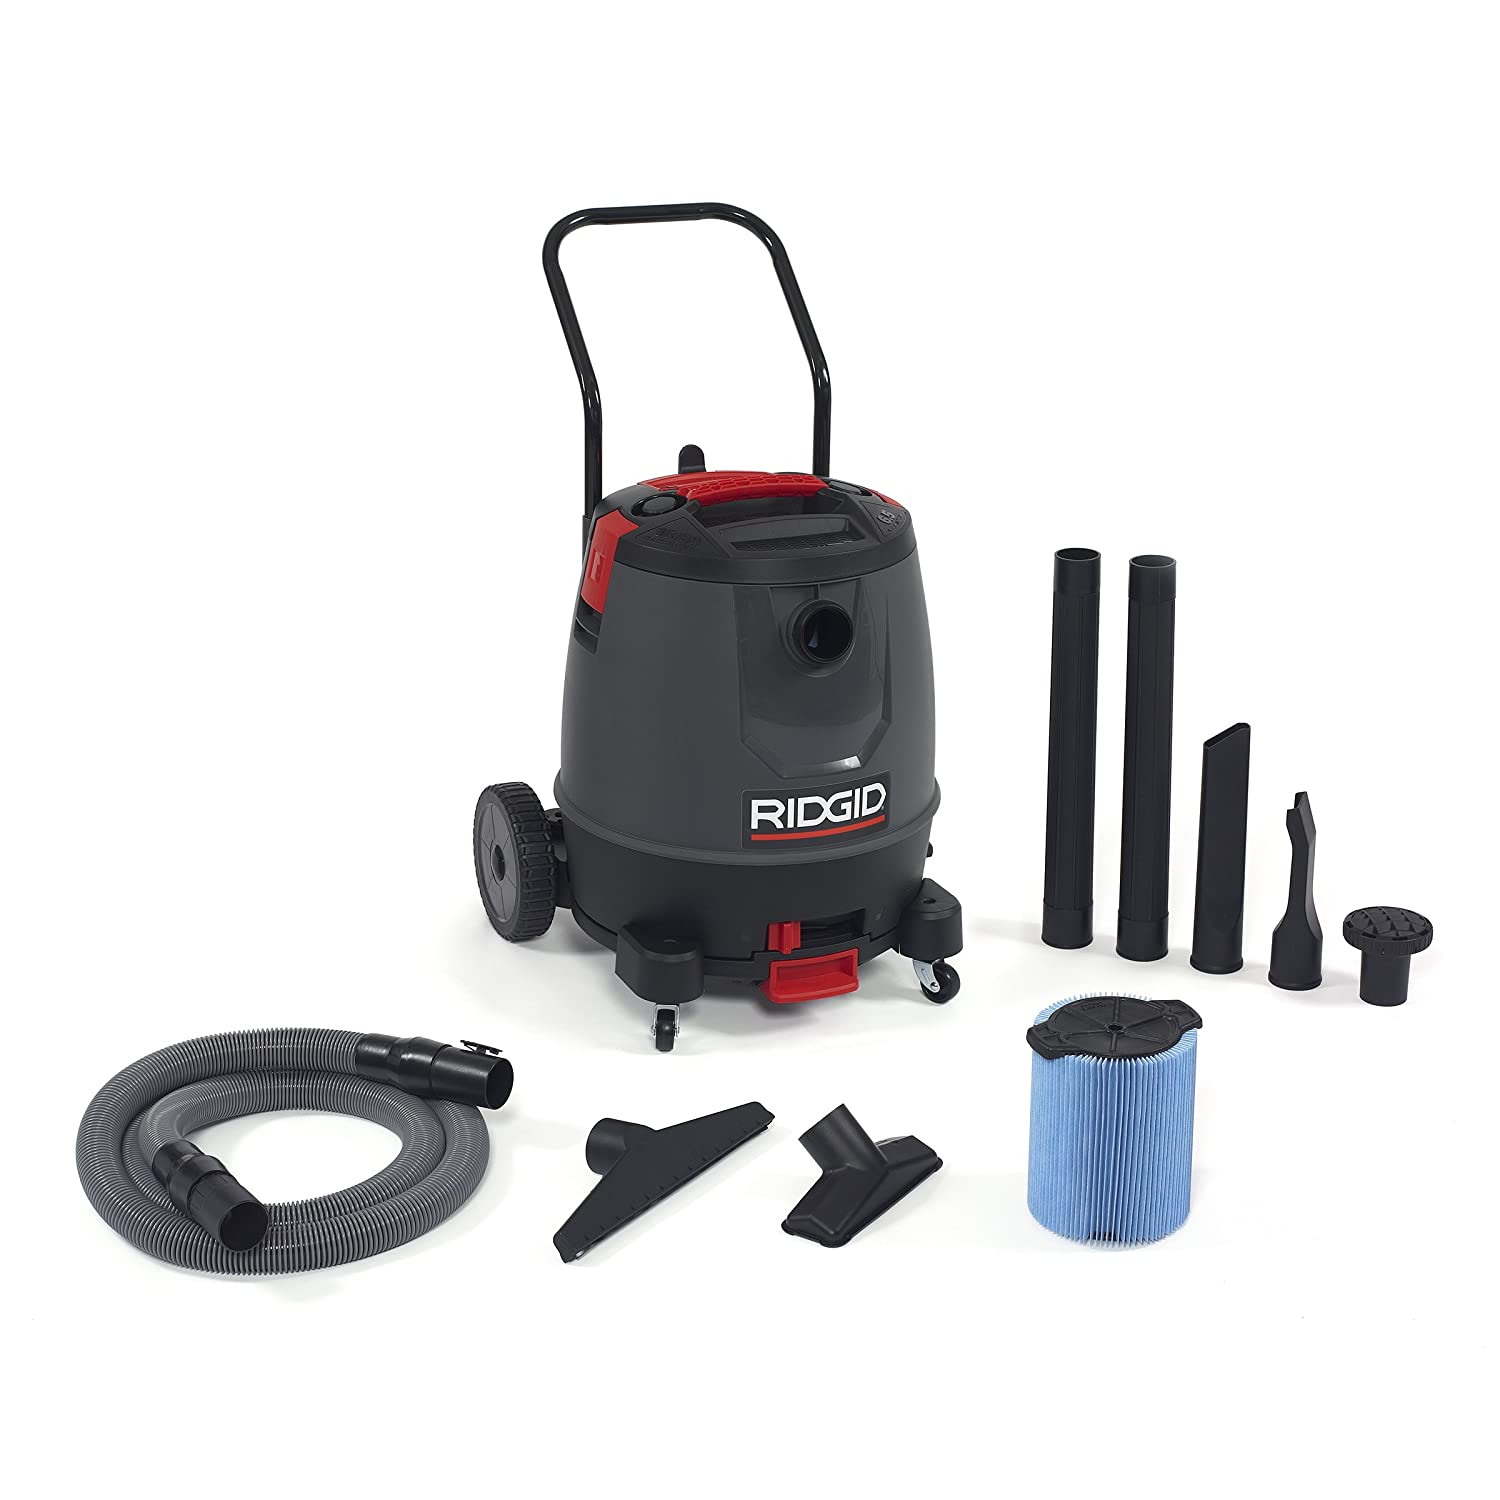 RIDGID 50338 1650RV Motor-on-Bottom Wet Dry Vacuum, 16-Gallon Shop Vacuum with Cart, 6.5 Peak HP Motor, Large Wheels, Pro Hose, Drain, Blower Port